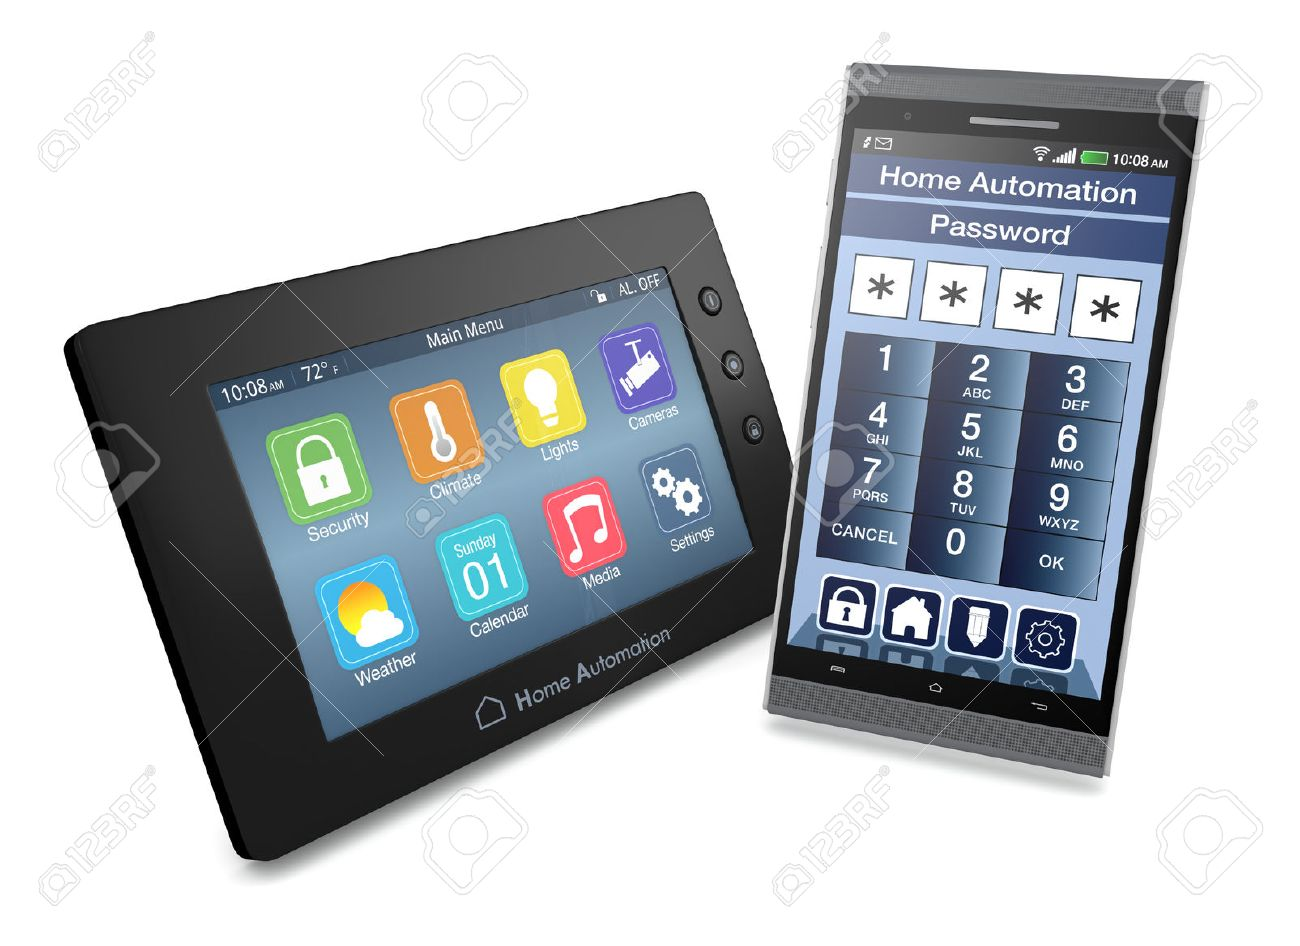 Smartphone Home Automation control panel for home automation system with a smartphone with